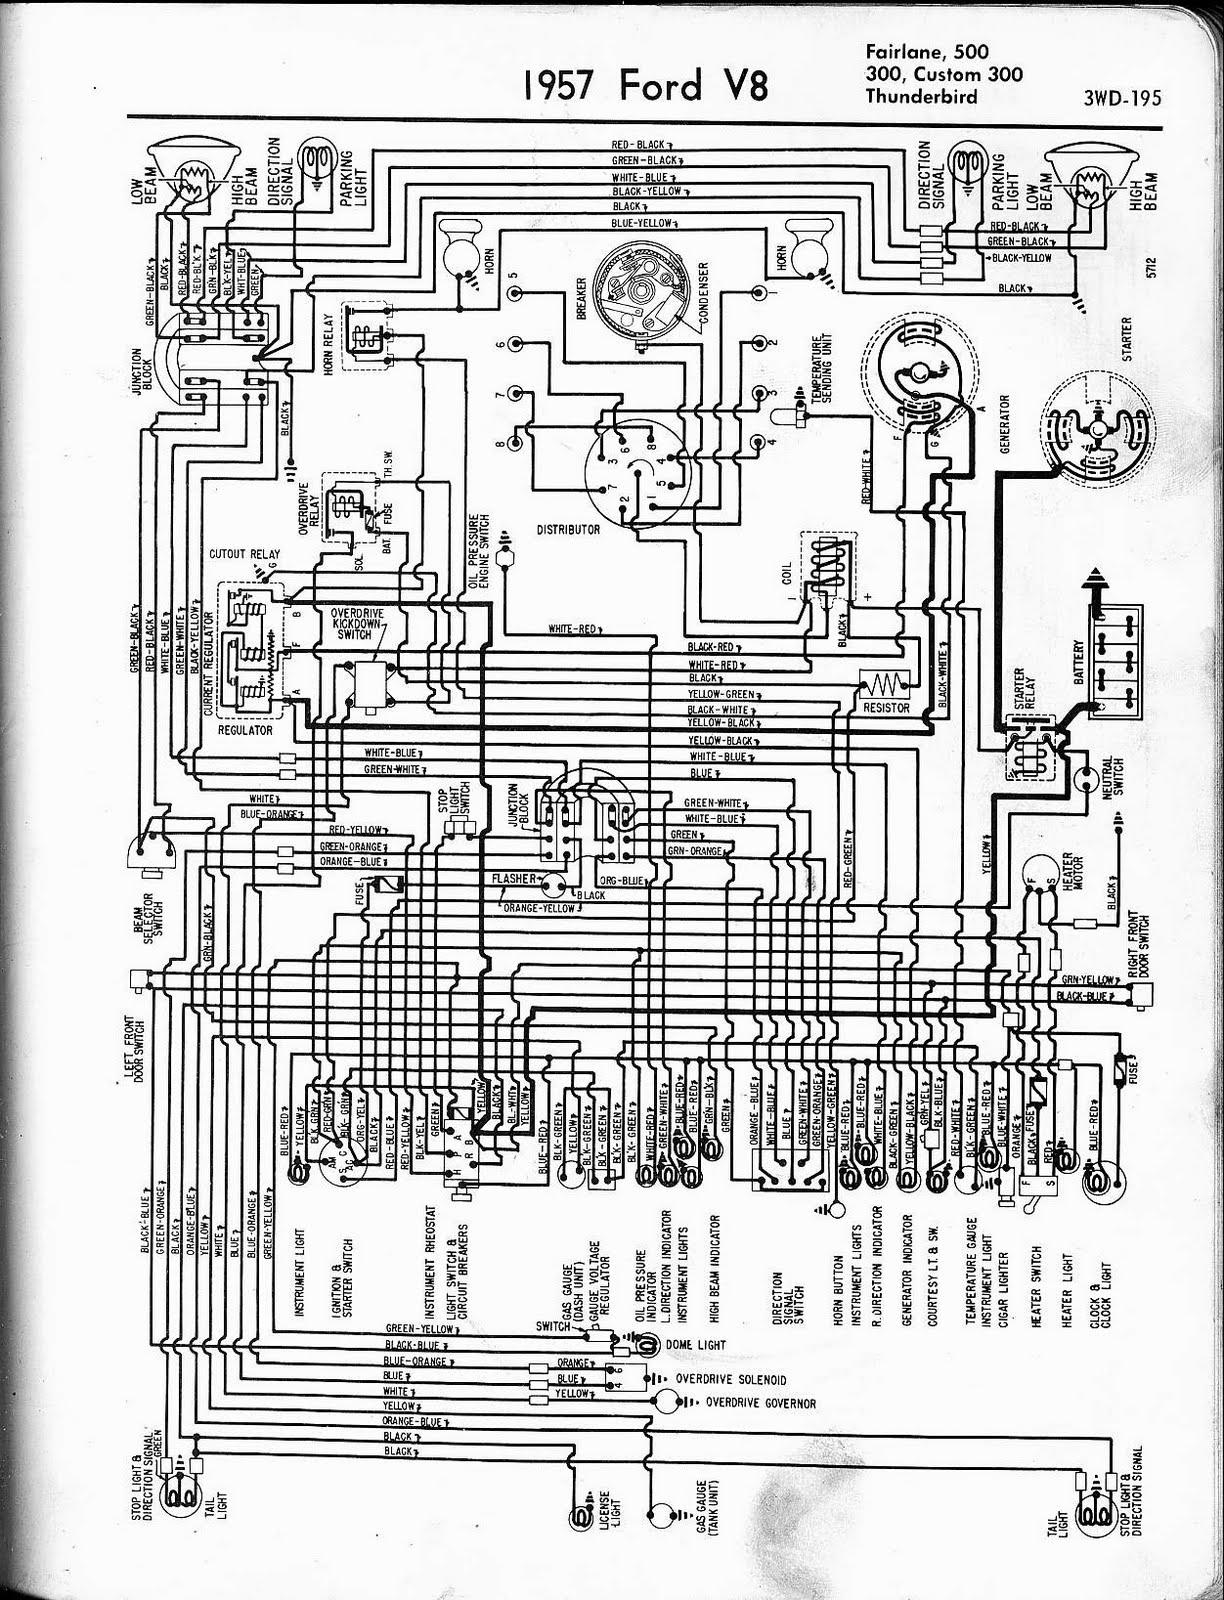 hight resolution of free auto wiring diagram 1957 ford v8 fairlane custom300 2006 ford crown victoria fuse box diagram